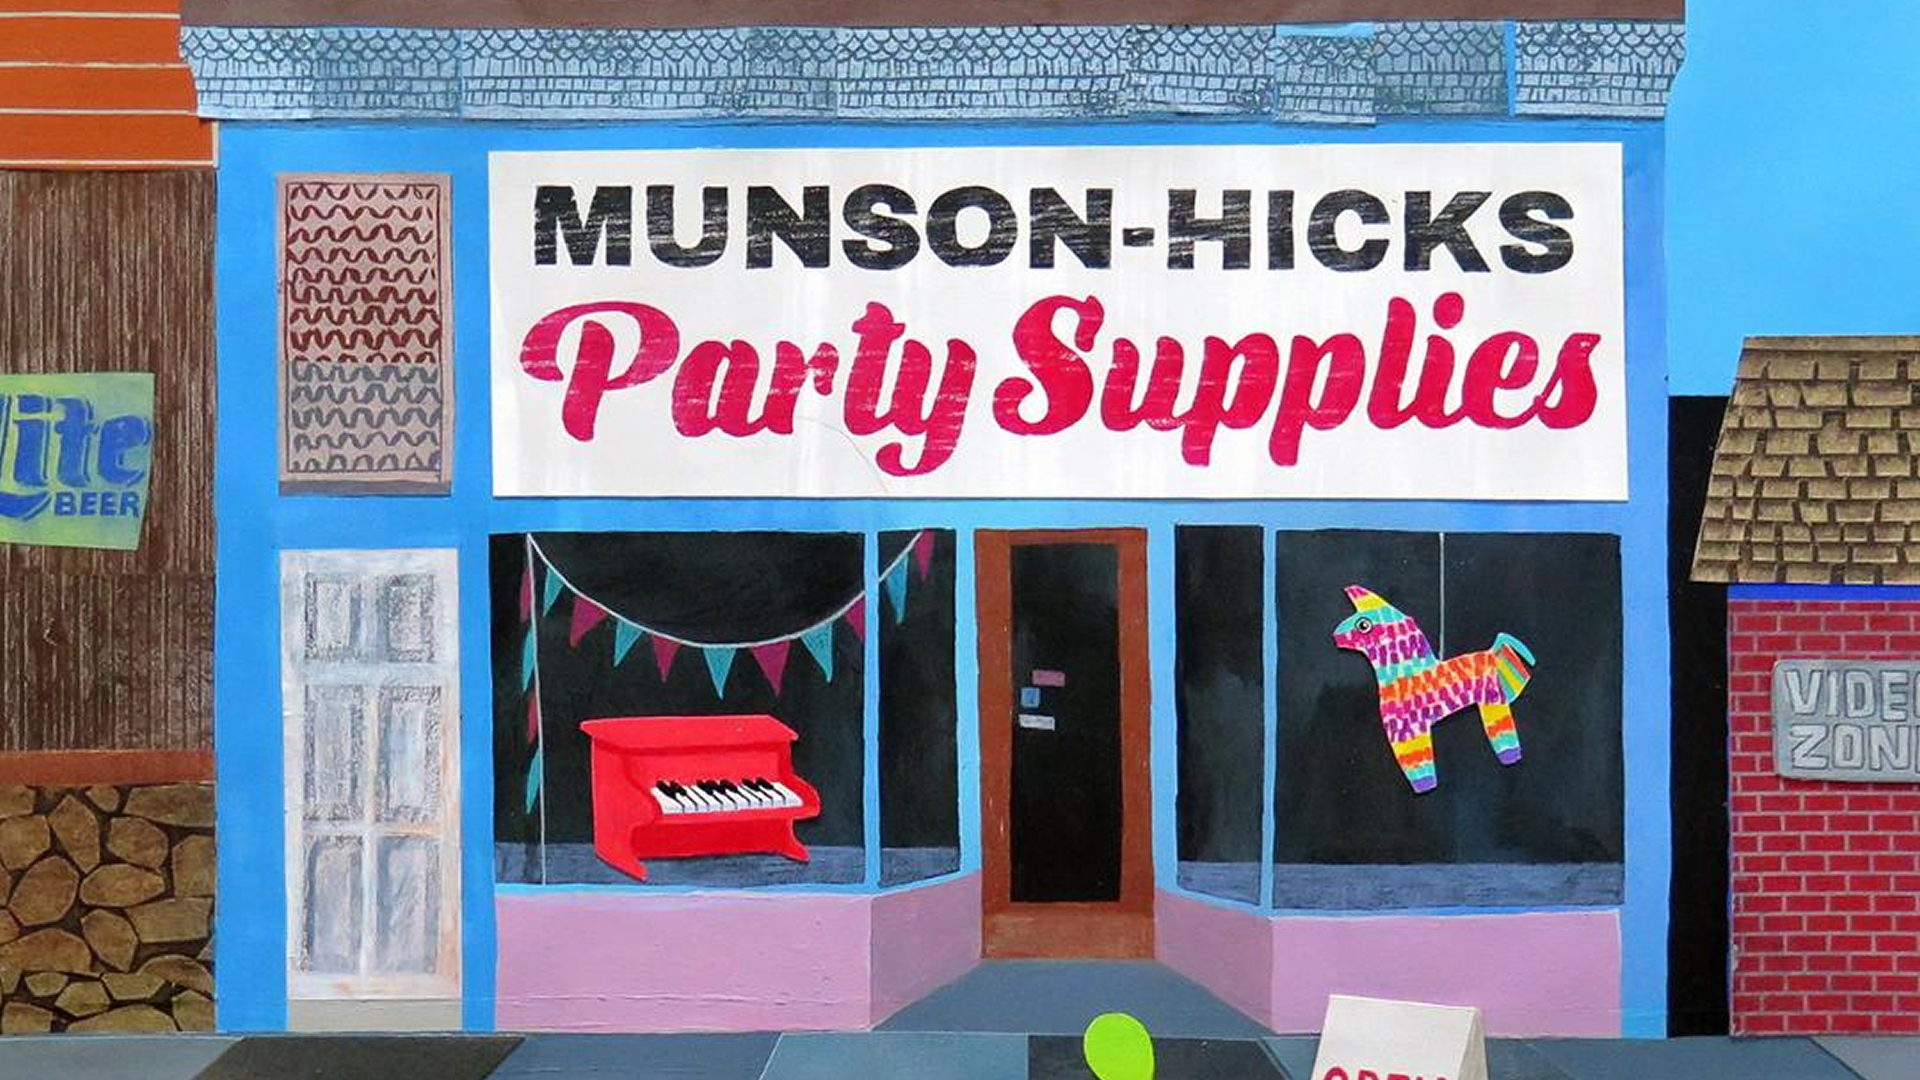 MUNSON-HICKS PARTY SUPPLIES